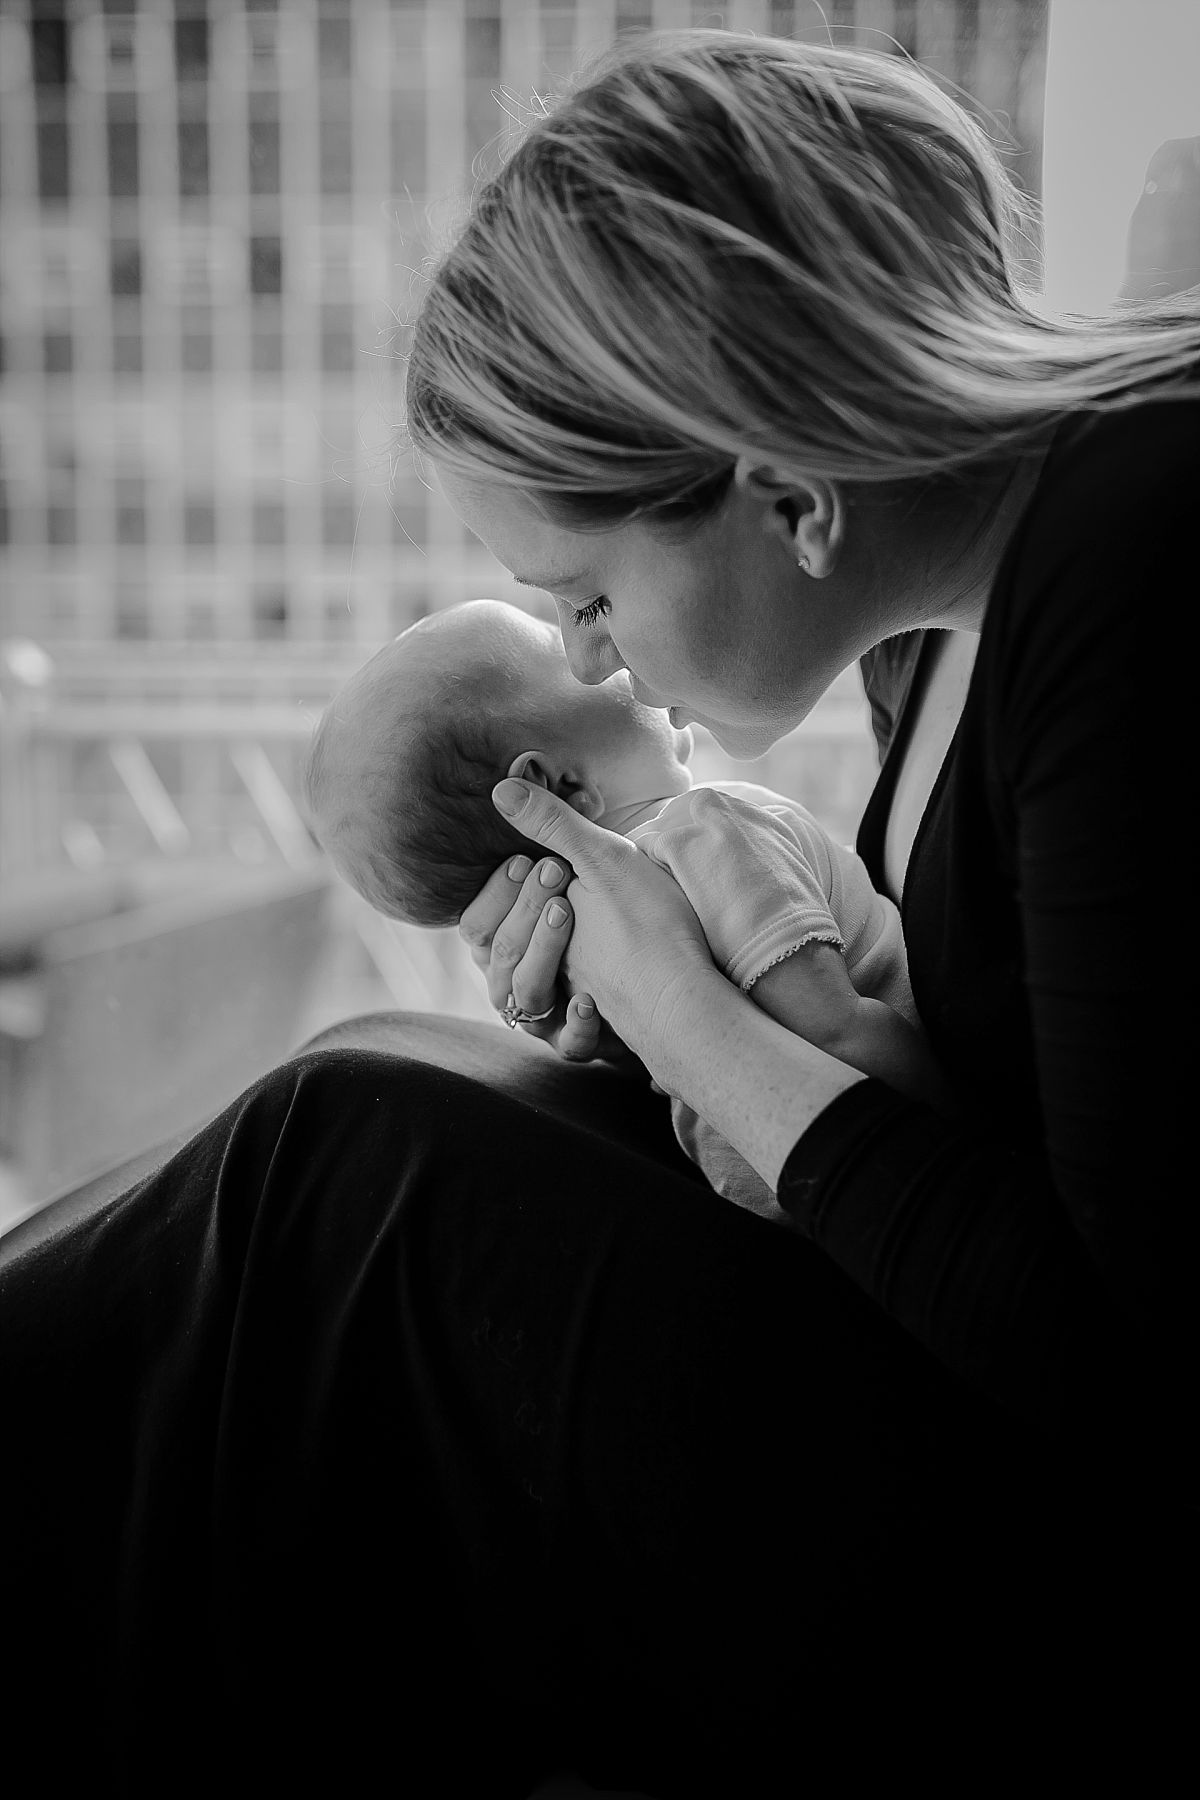 newborn daughter lays on mom's lap and looks up at mom with big eyes. krystil mcdowall photography captures candid family photos